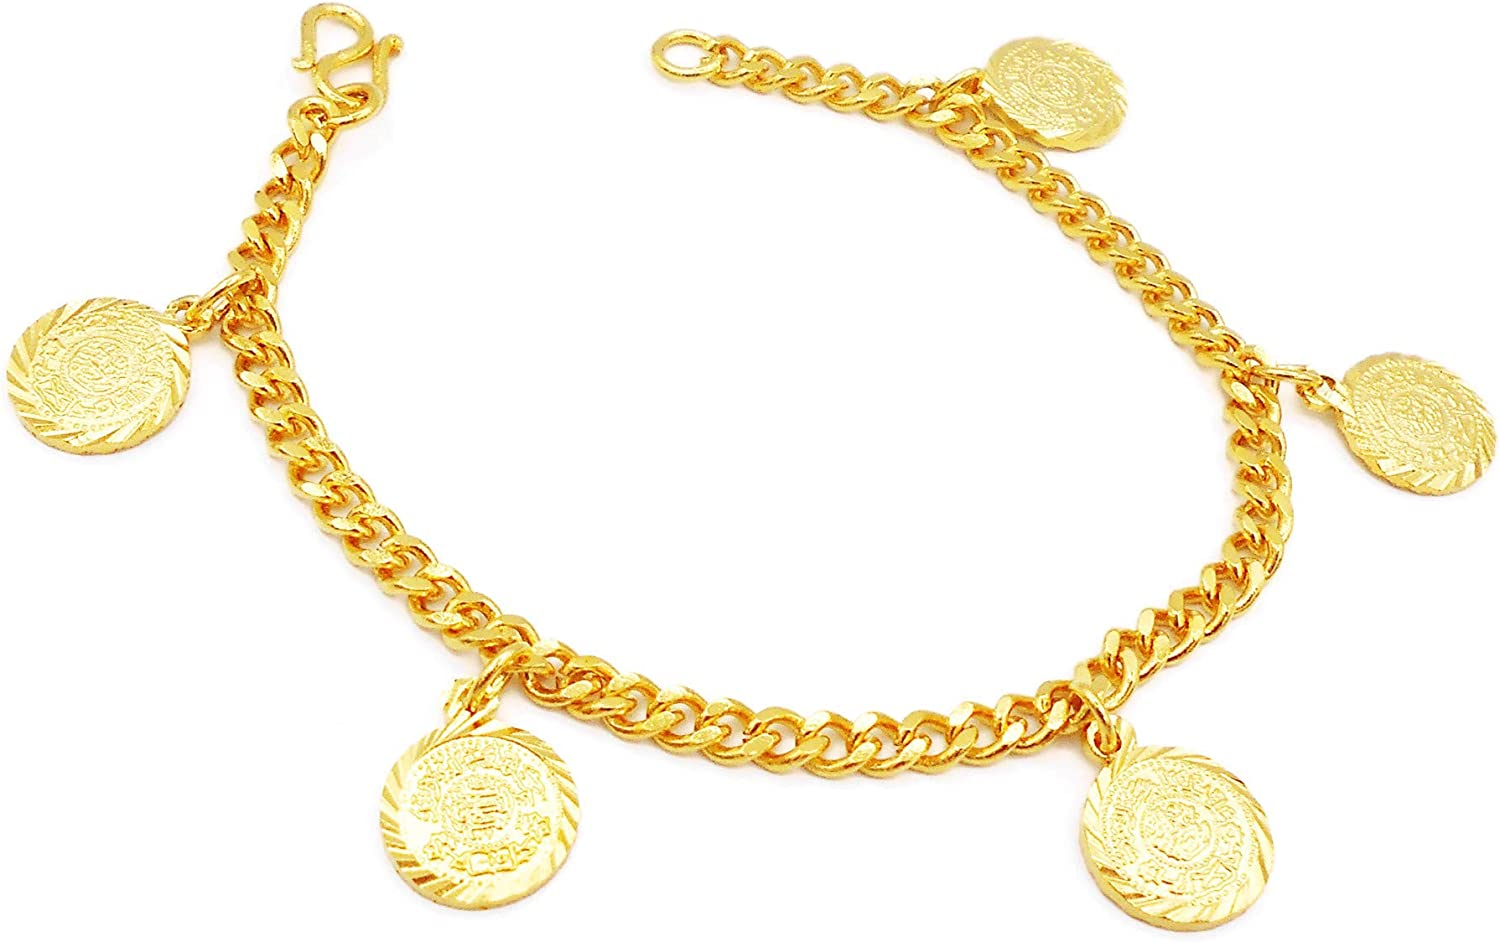 Coins Bracelets Bangle 18k 22k 23k 24k Thai Baht Yellow Gold Plated Jewelry Women For Her Costume Jewelry 6.5 Inch